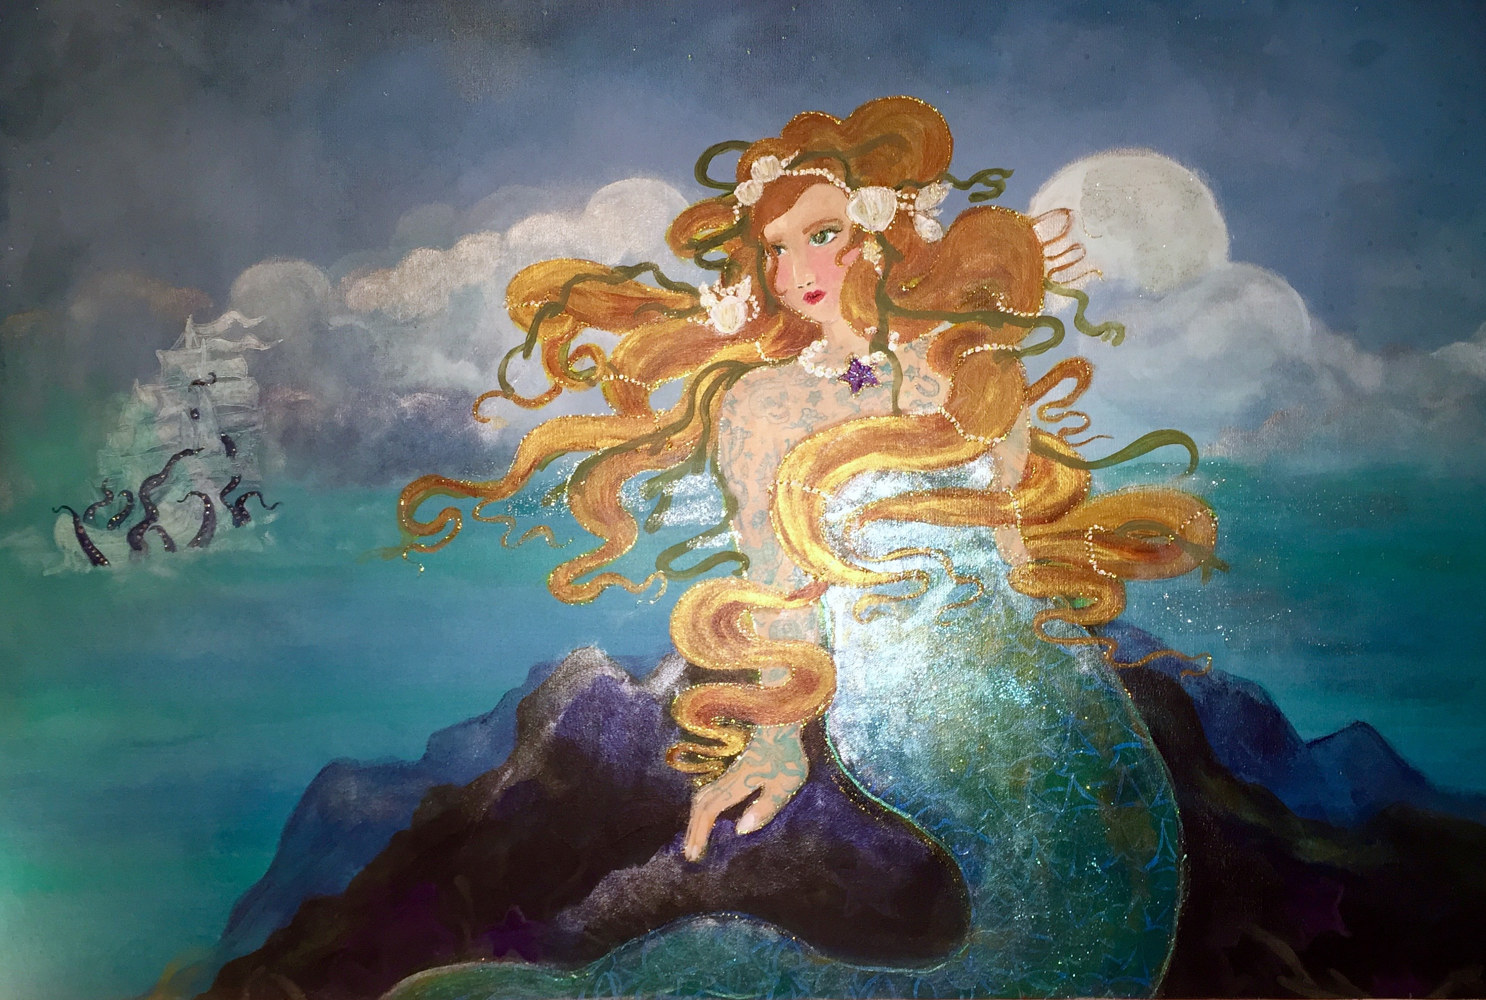 Acrylic painting Mermaid with Kraken and Ghost Ship by Barb Martel